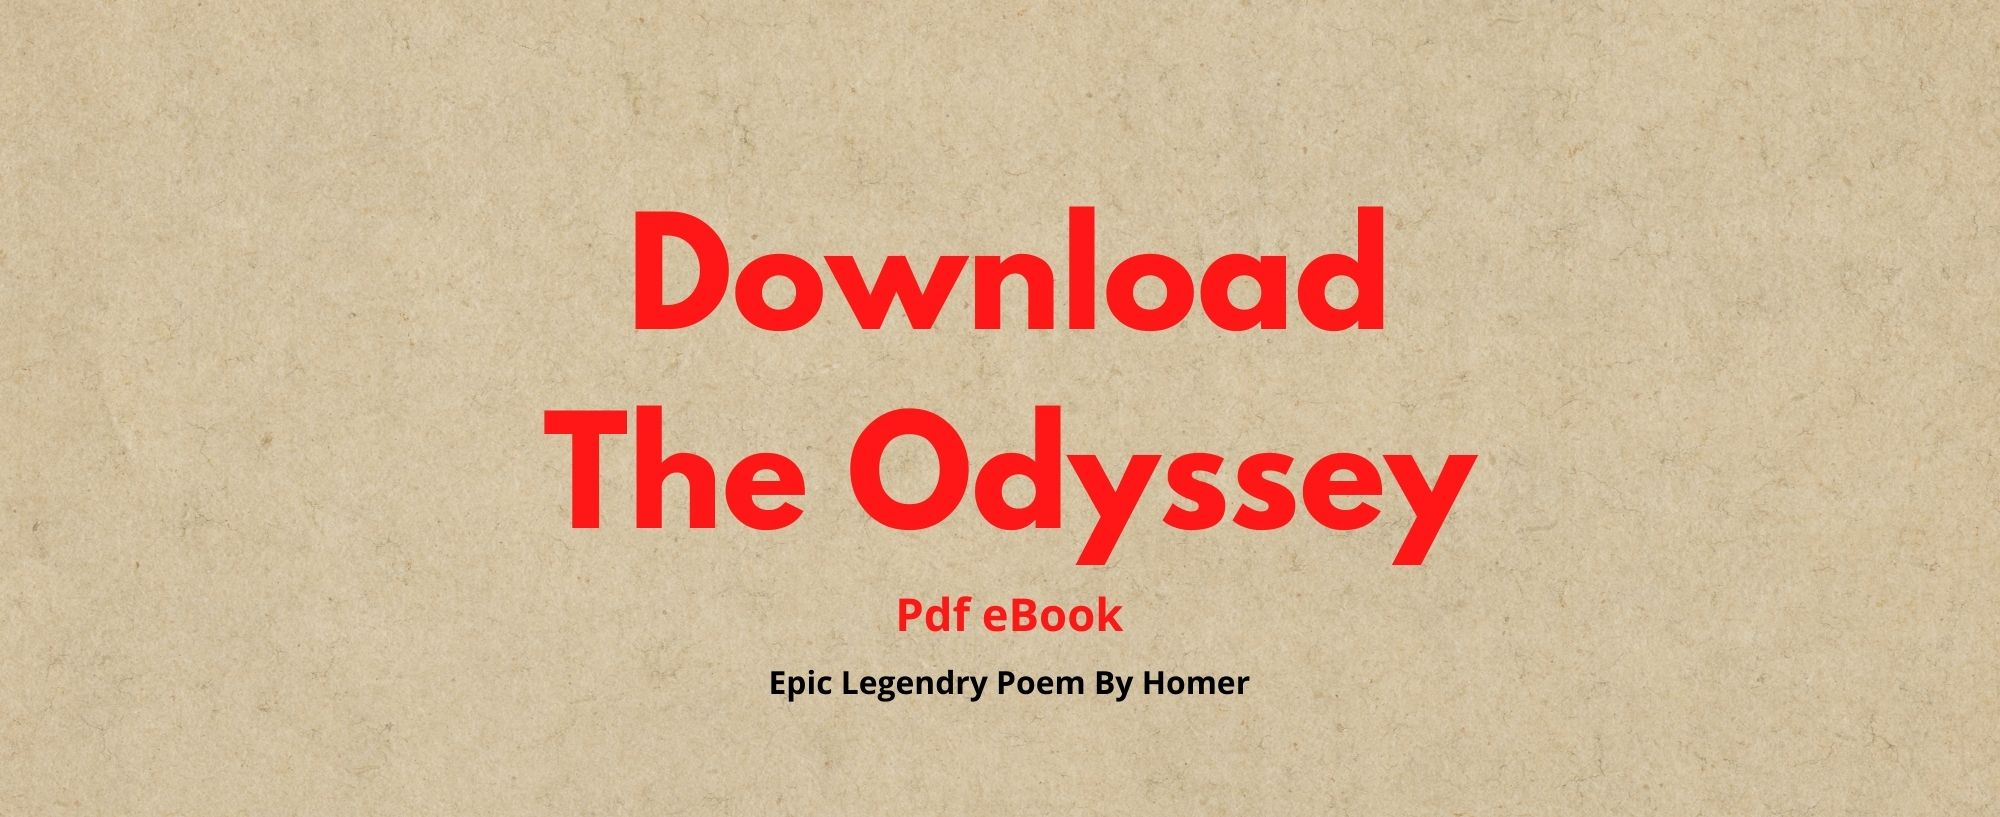 Download The Odyssey Pdf